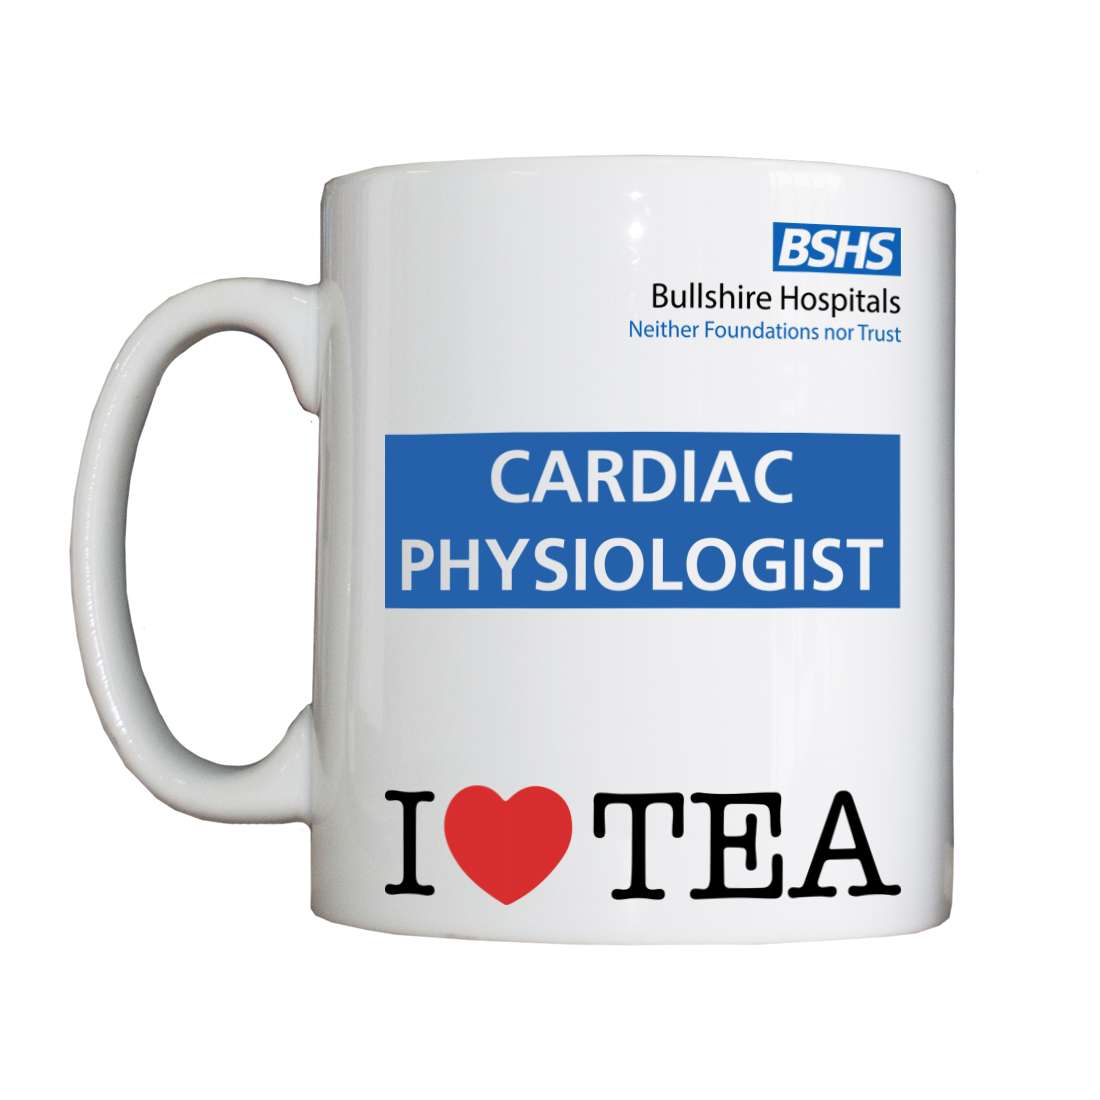 Personalised 'Cardiac Physiologist' Drinking Vessel BSHSCardiacPhysiologiseVessel